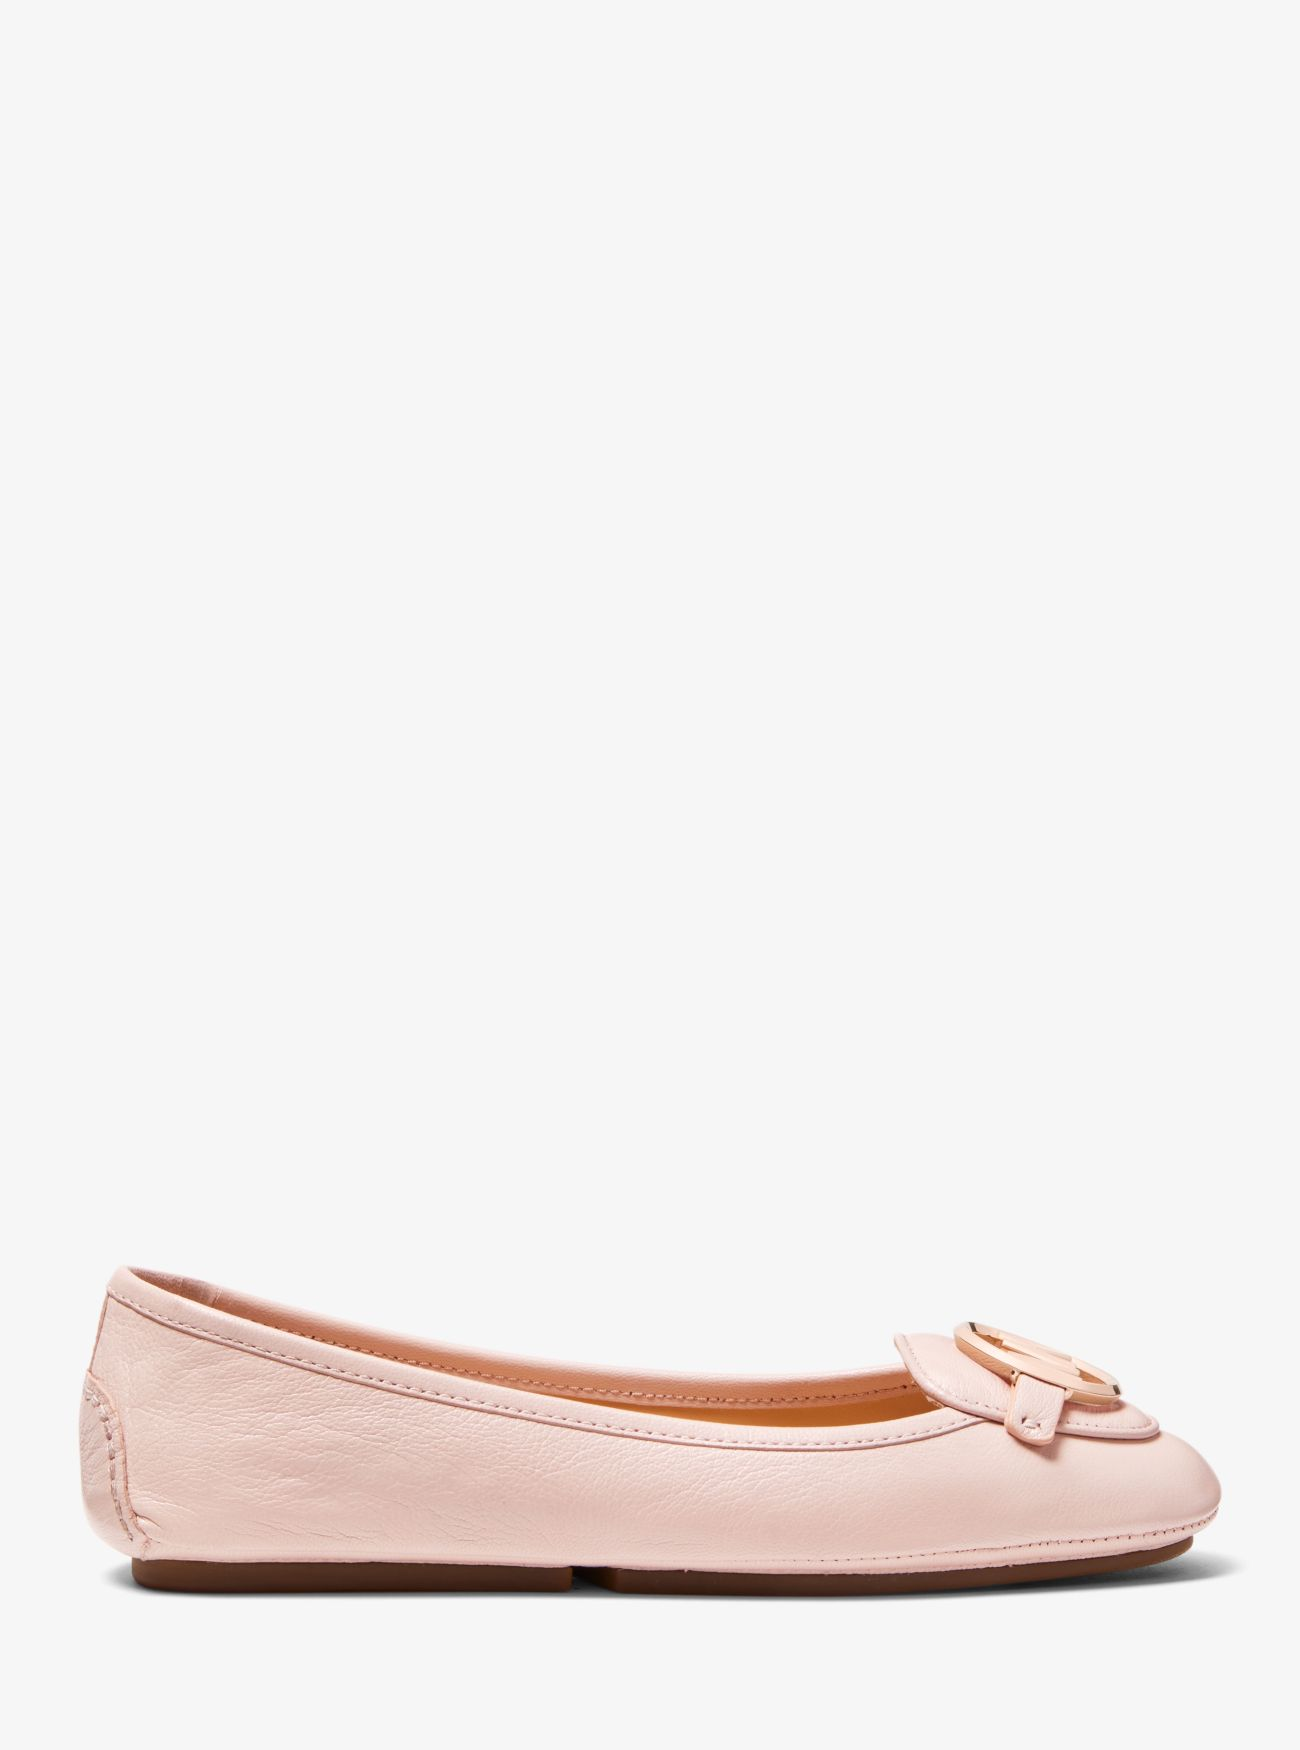 Lillie Leather Moccasin Michael Kors